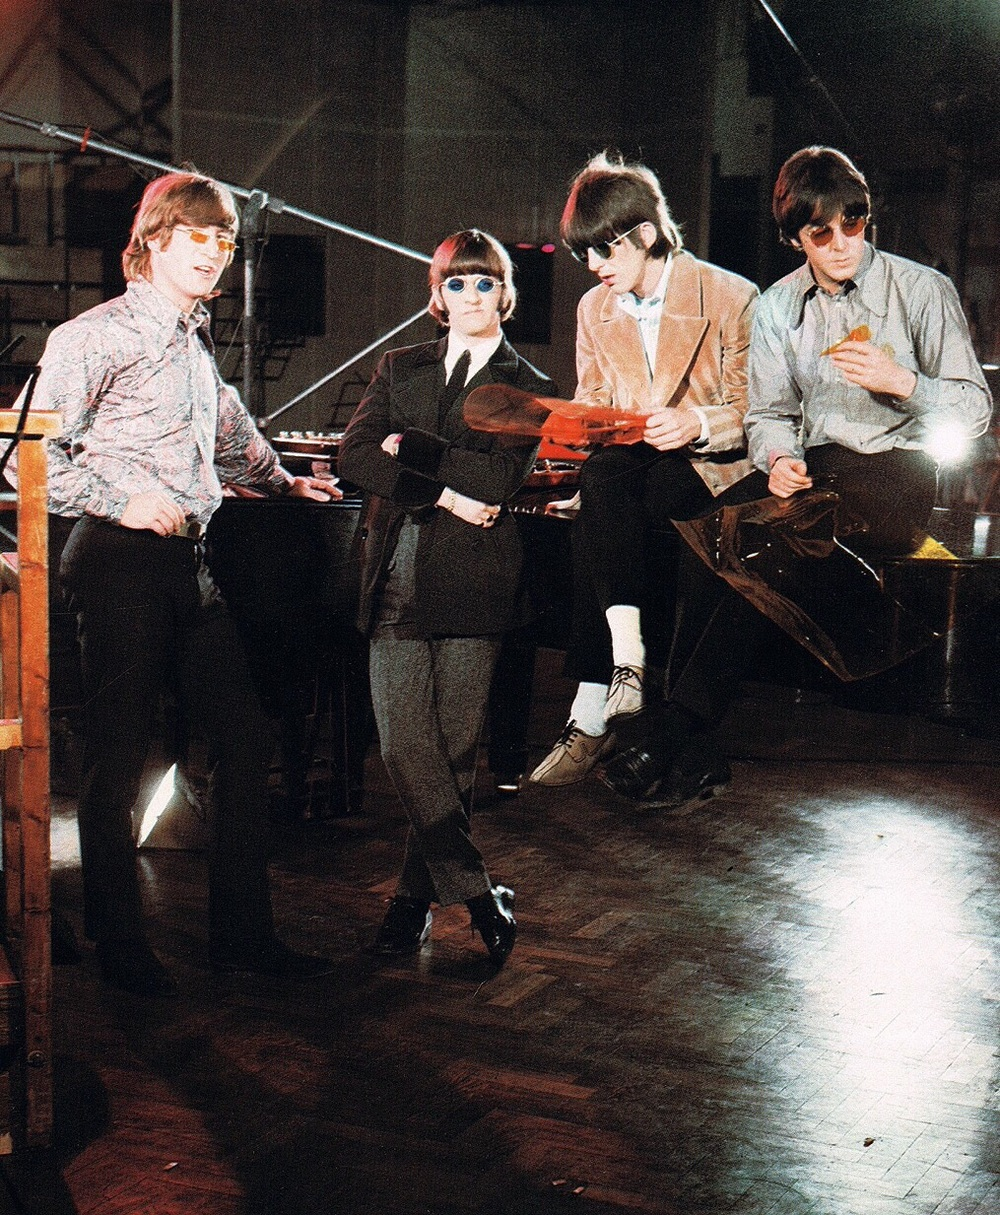 The Beatles filming a promo video for Paperback Writer, 1966.